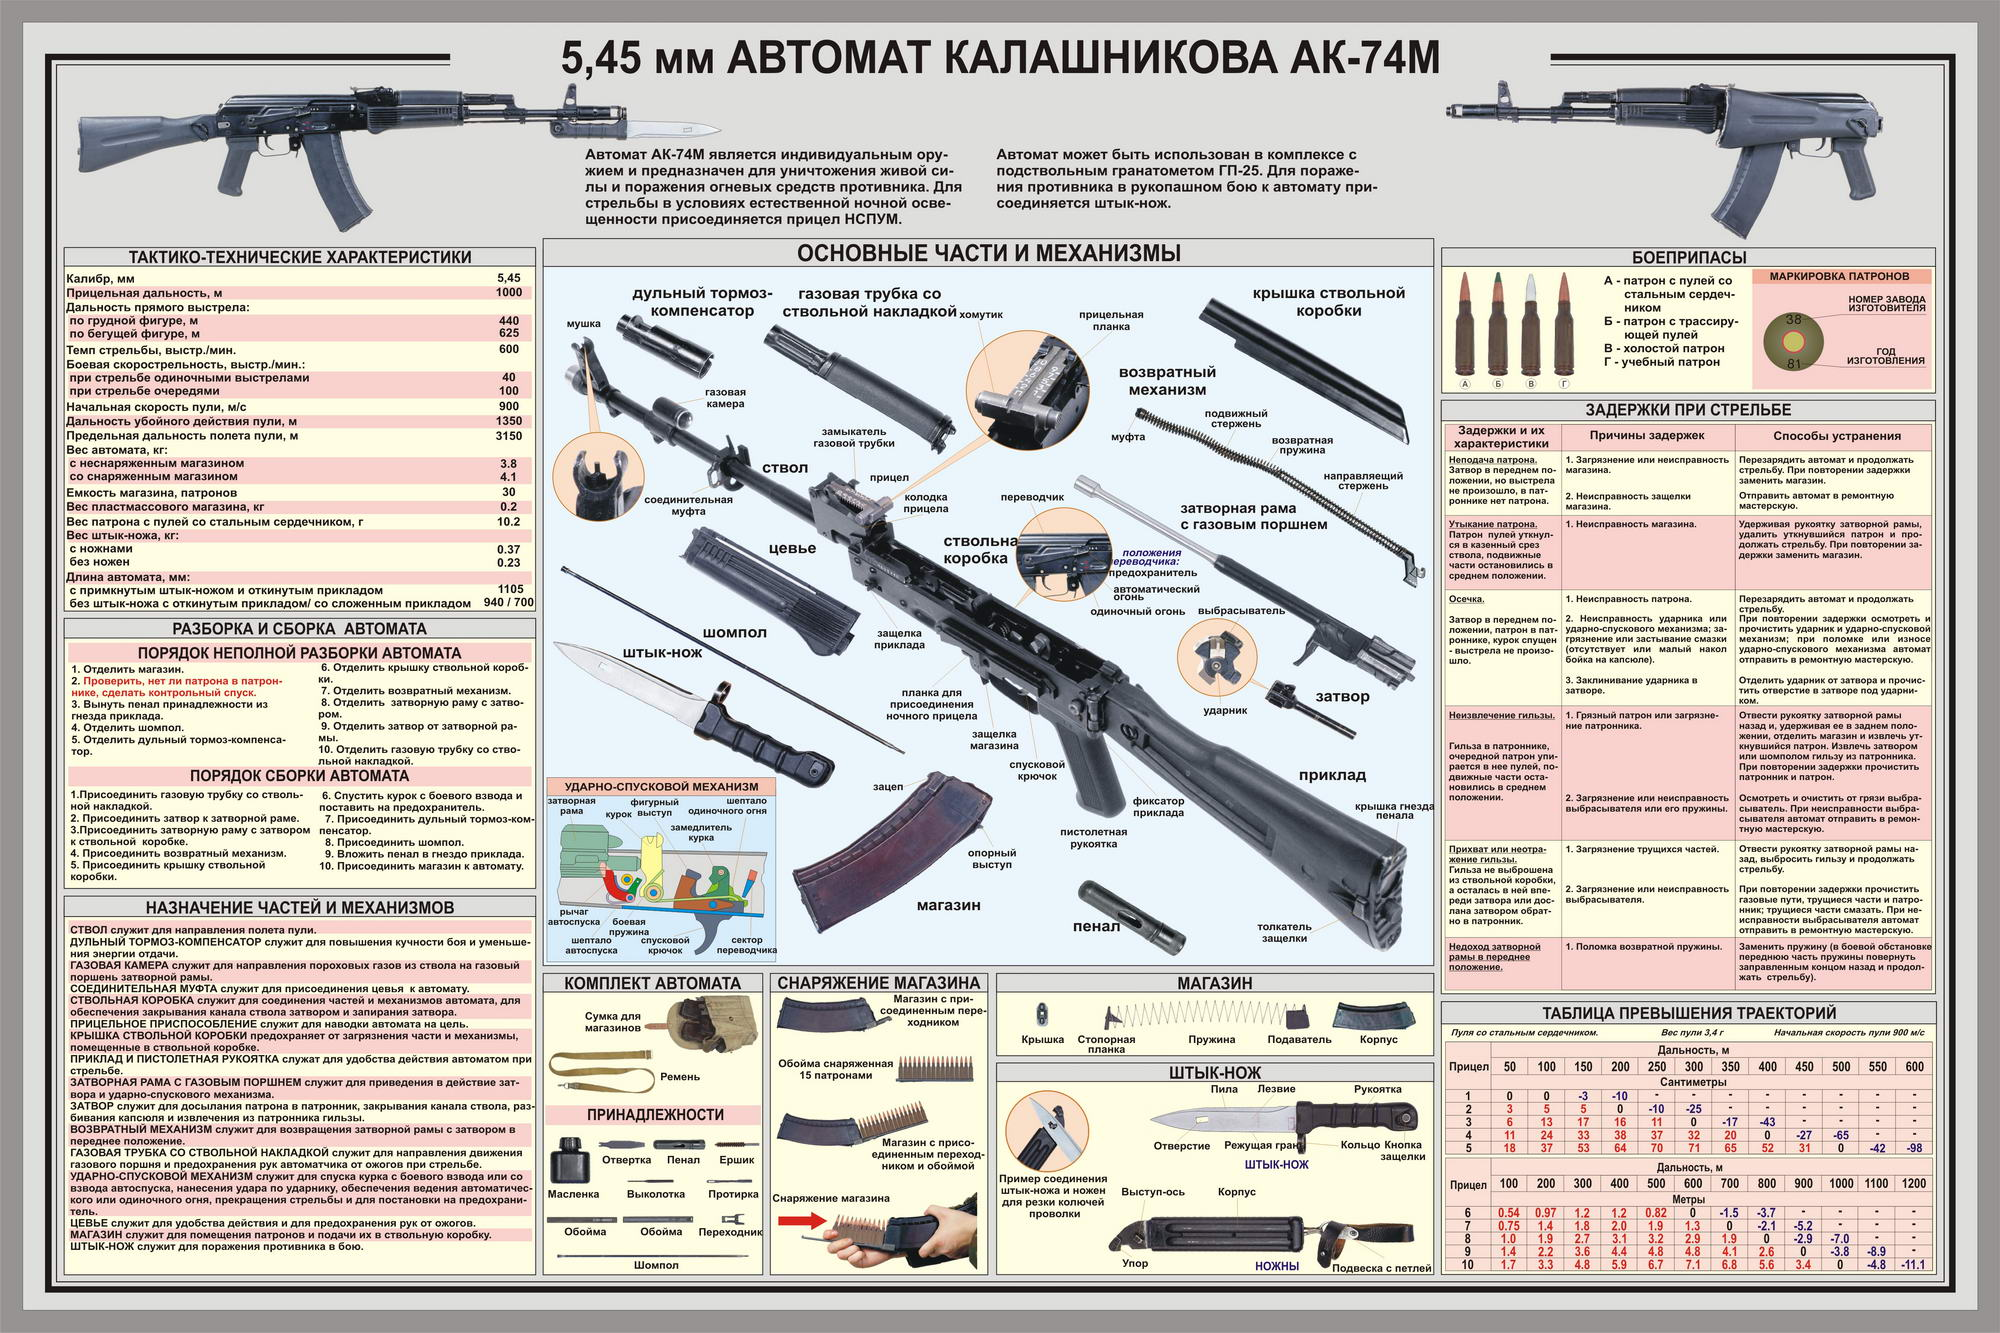 5.45 mm Kalashnikov AK-74m assault rifle